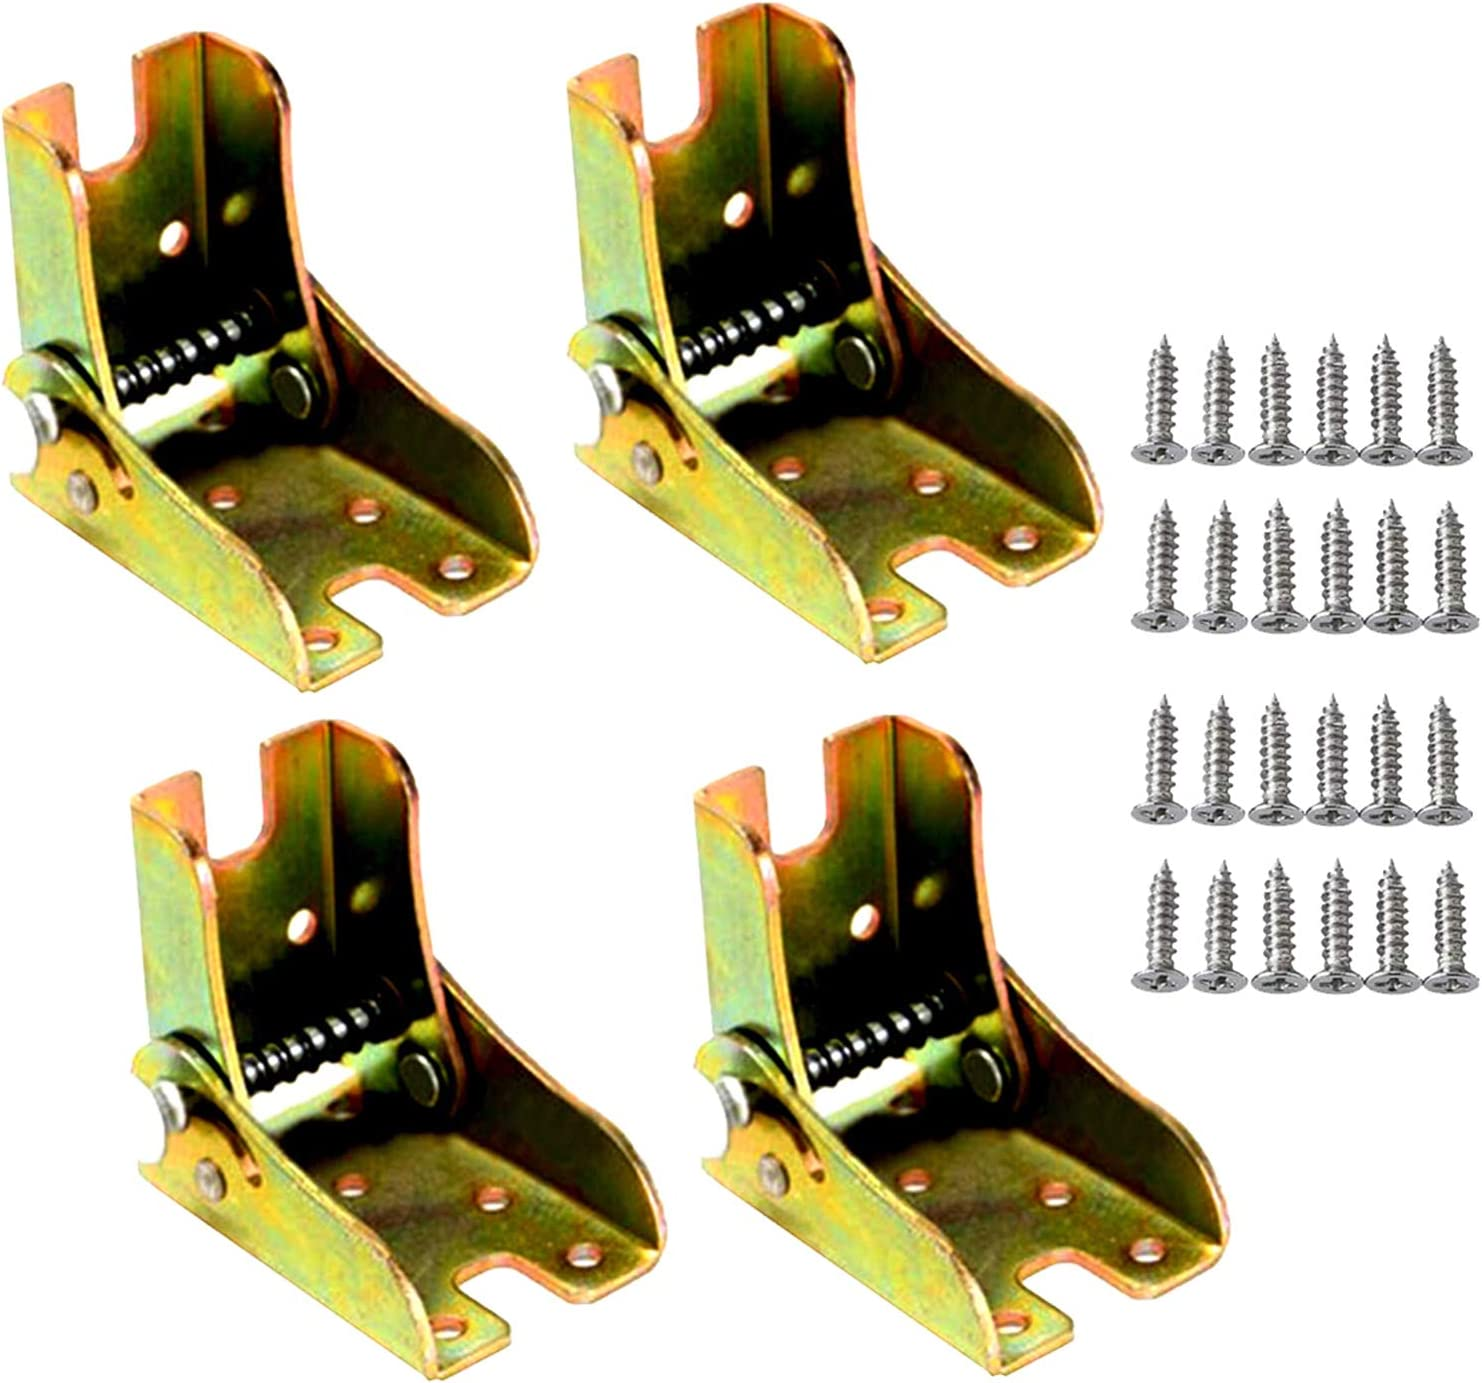 Folding Department store OFFicial Bracket-self-Locking Hinge-Leg Gussets-f and Accessories